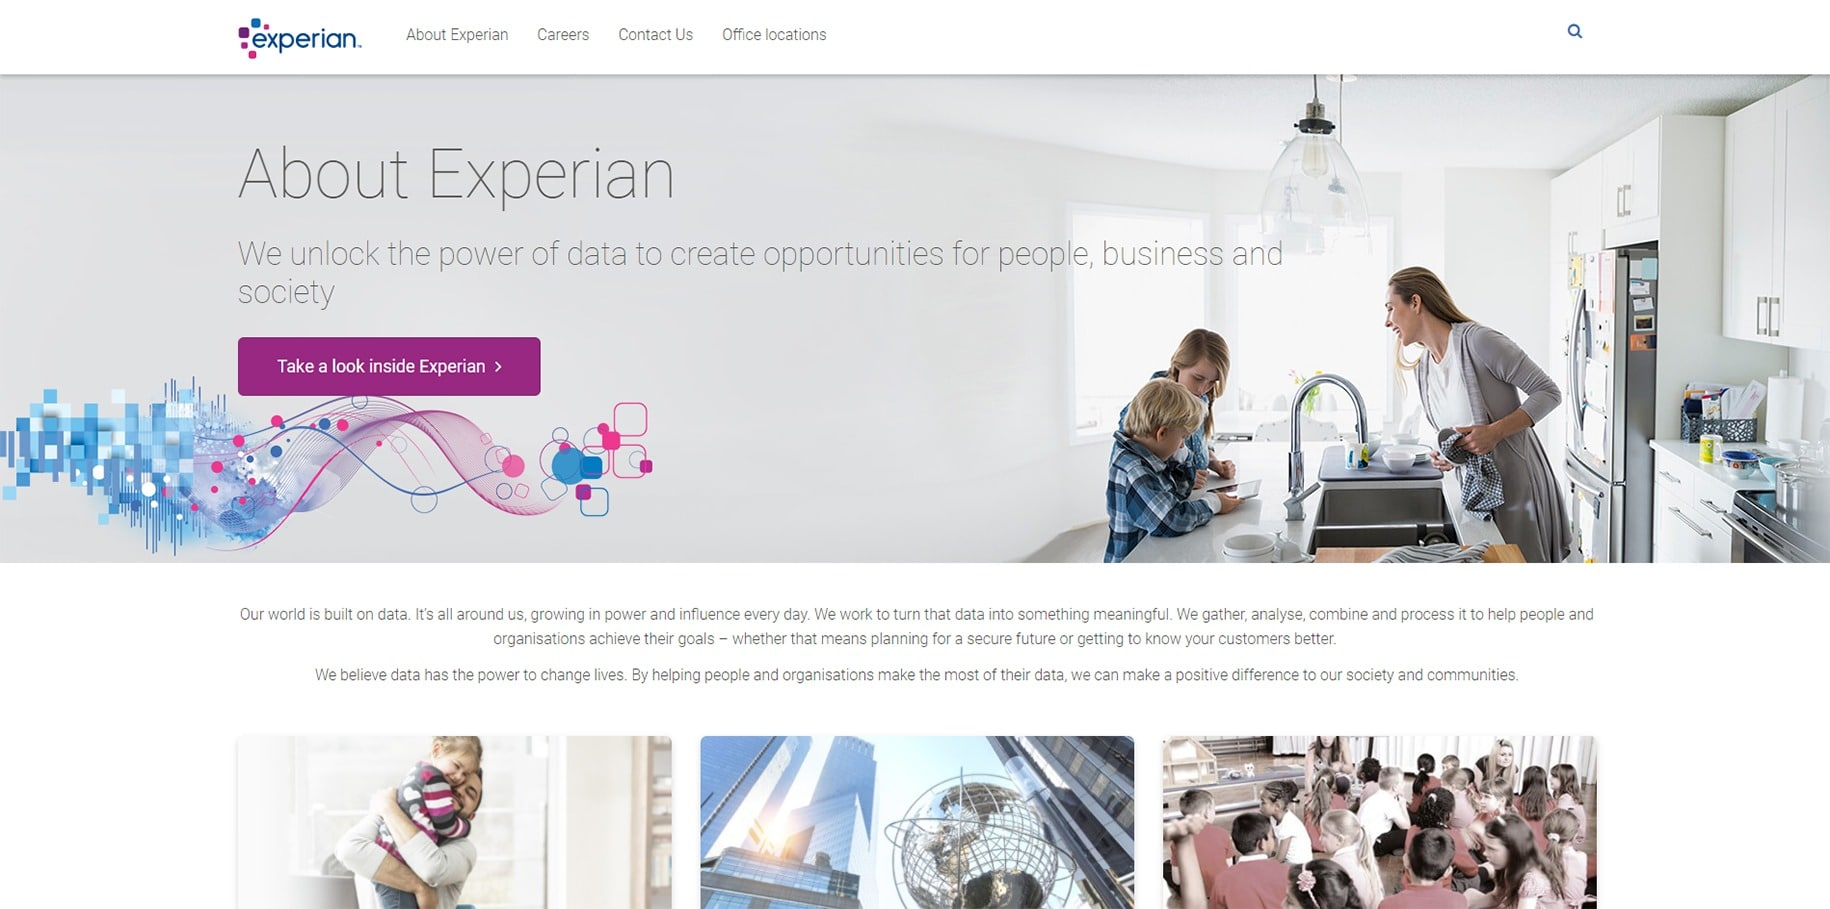 SessionCam and Experian Case Study